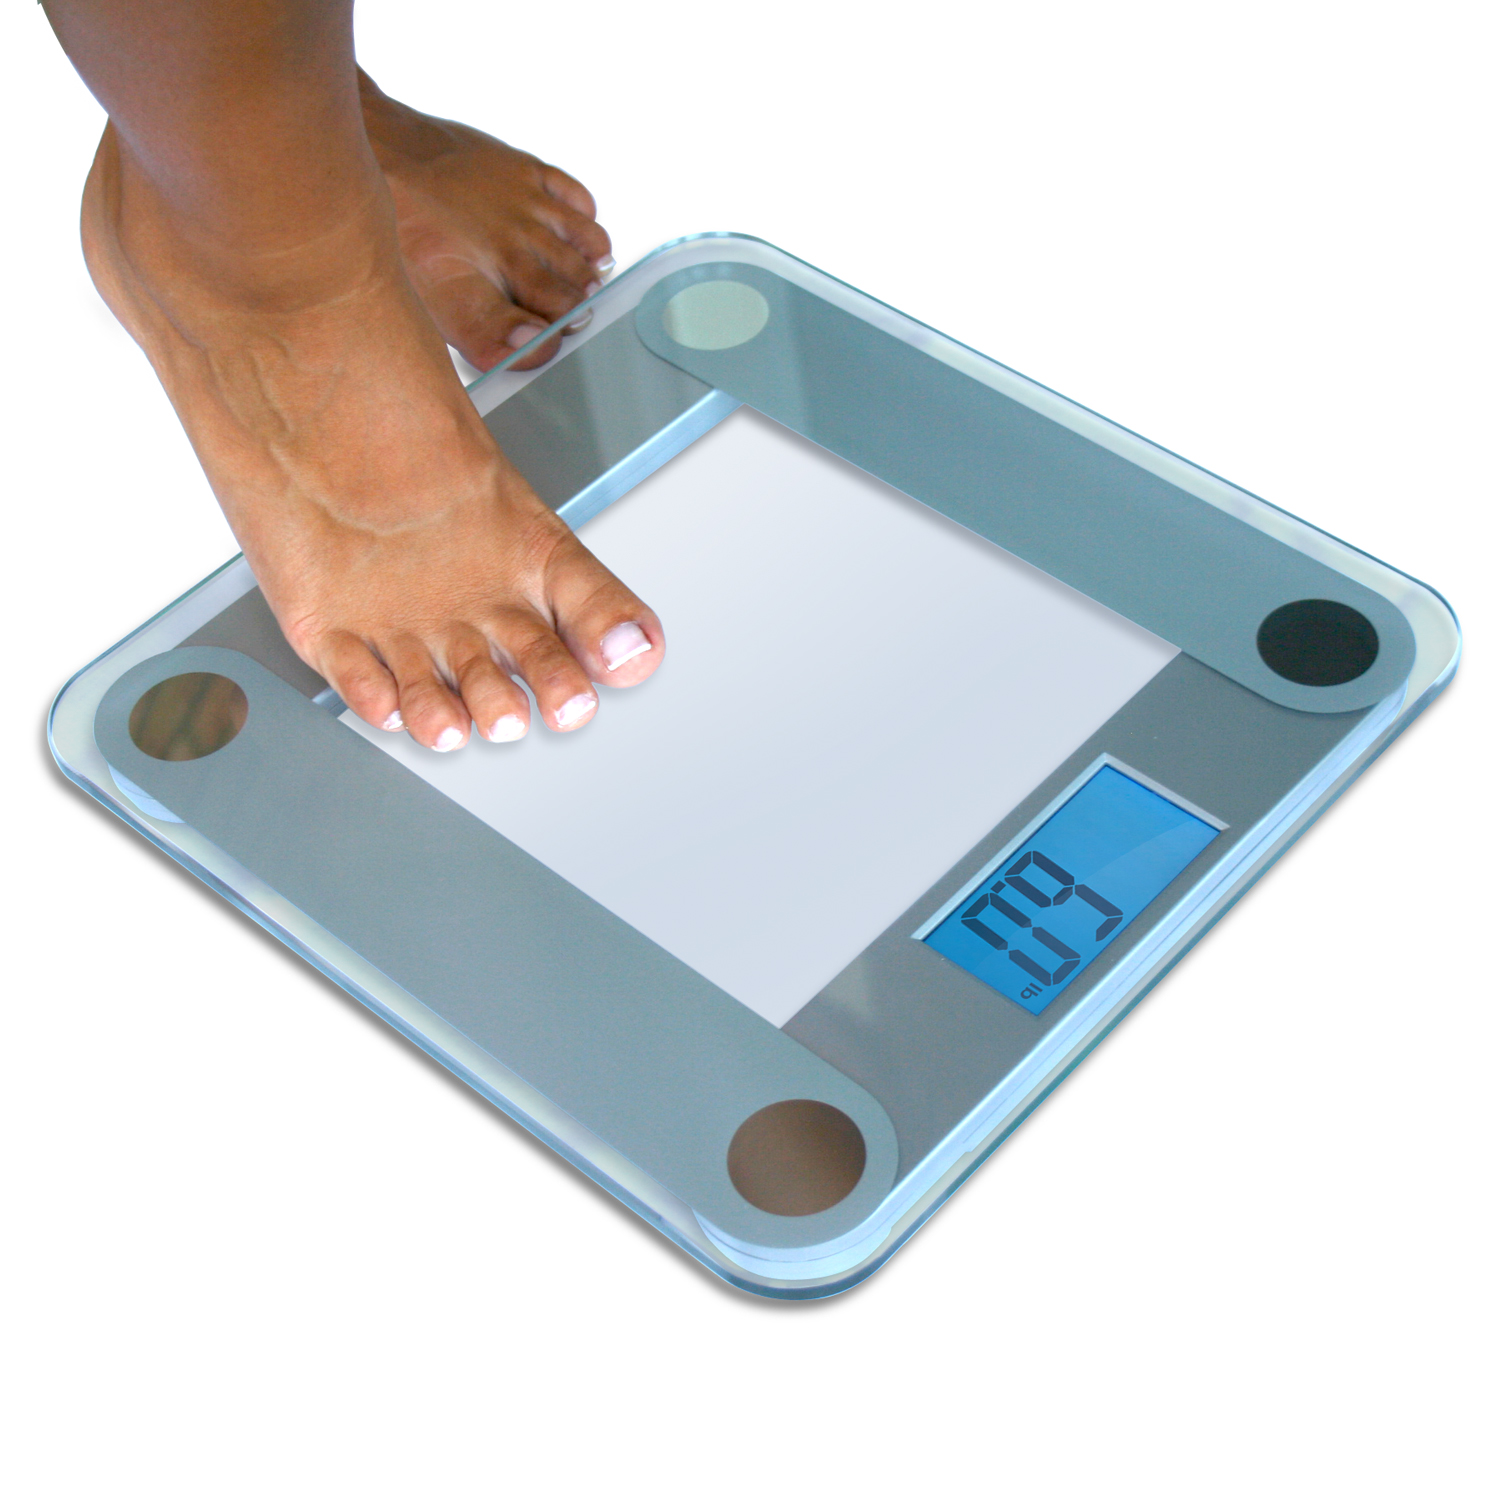 Three things to know about digital bathroom scales the - How to calibrate a bathroom scale ...